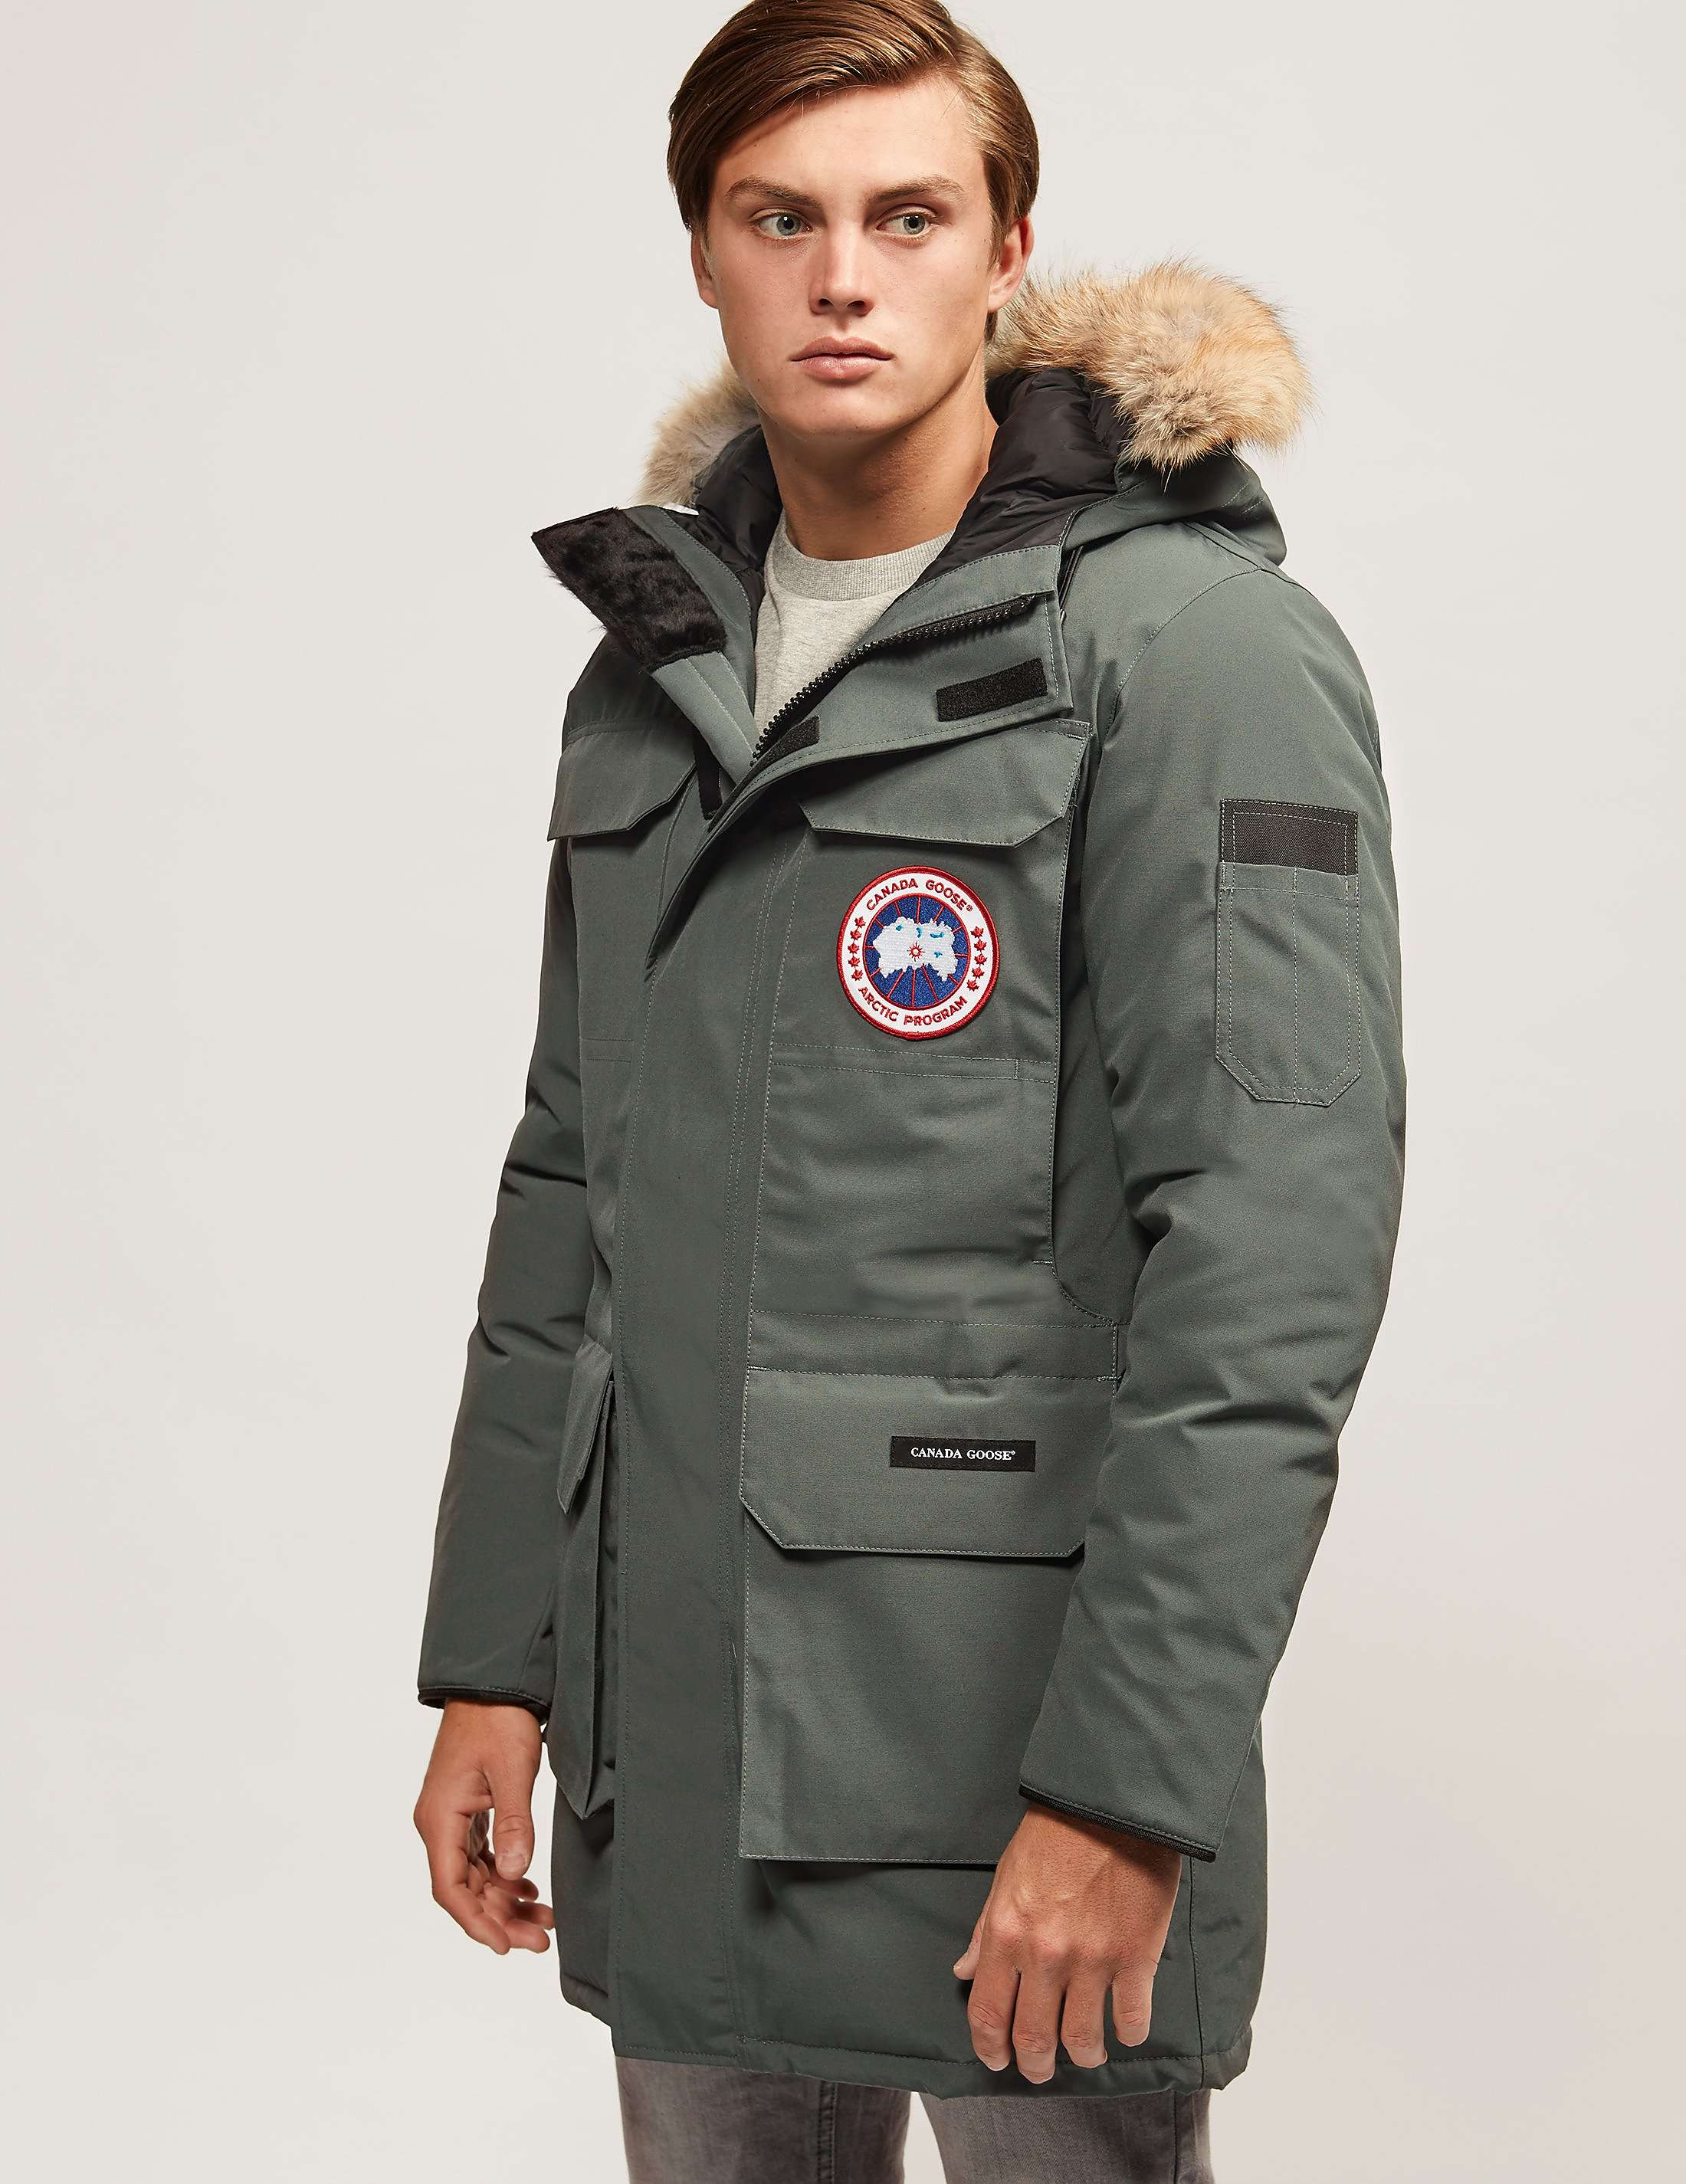 ... canadian goose jackets, although I think they are stupidly overpriced.